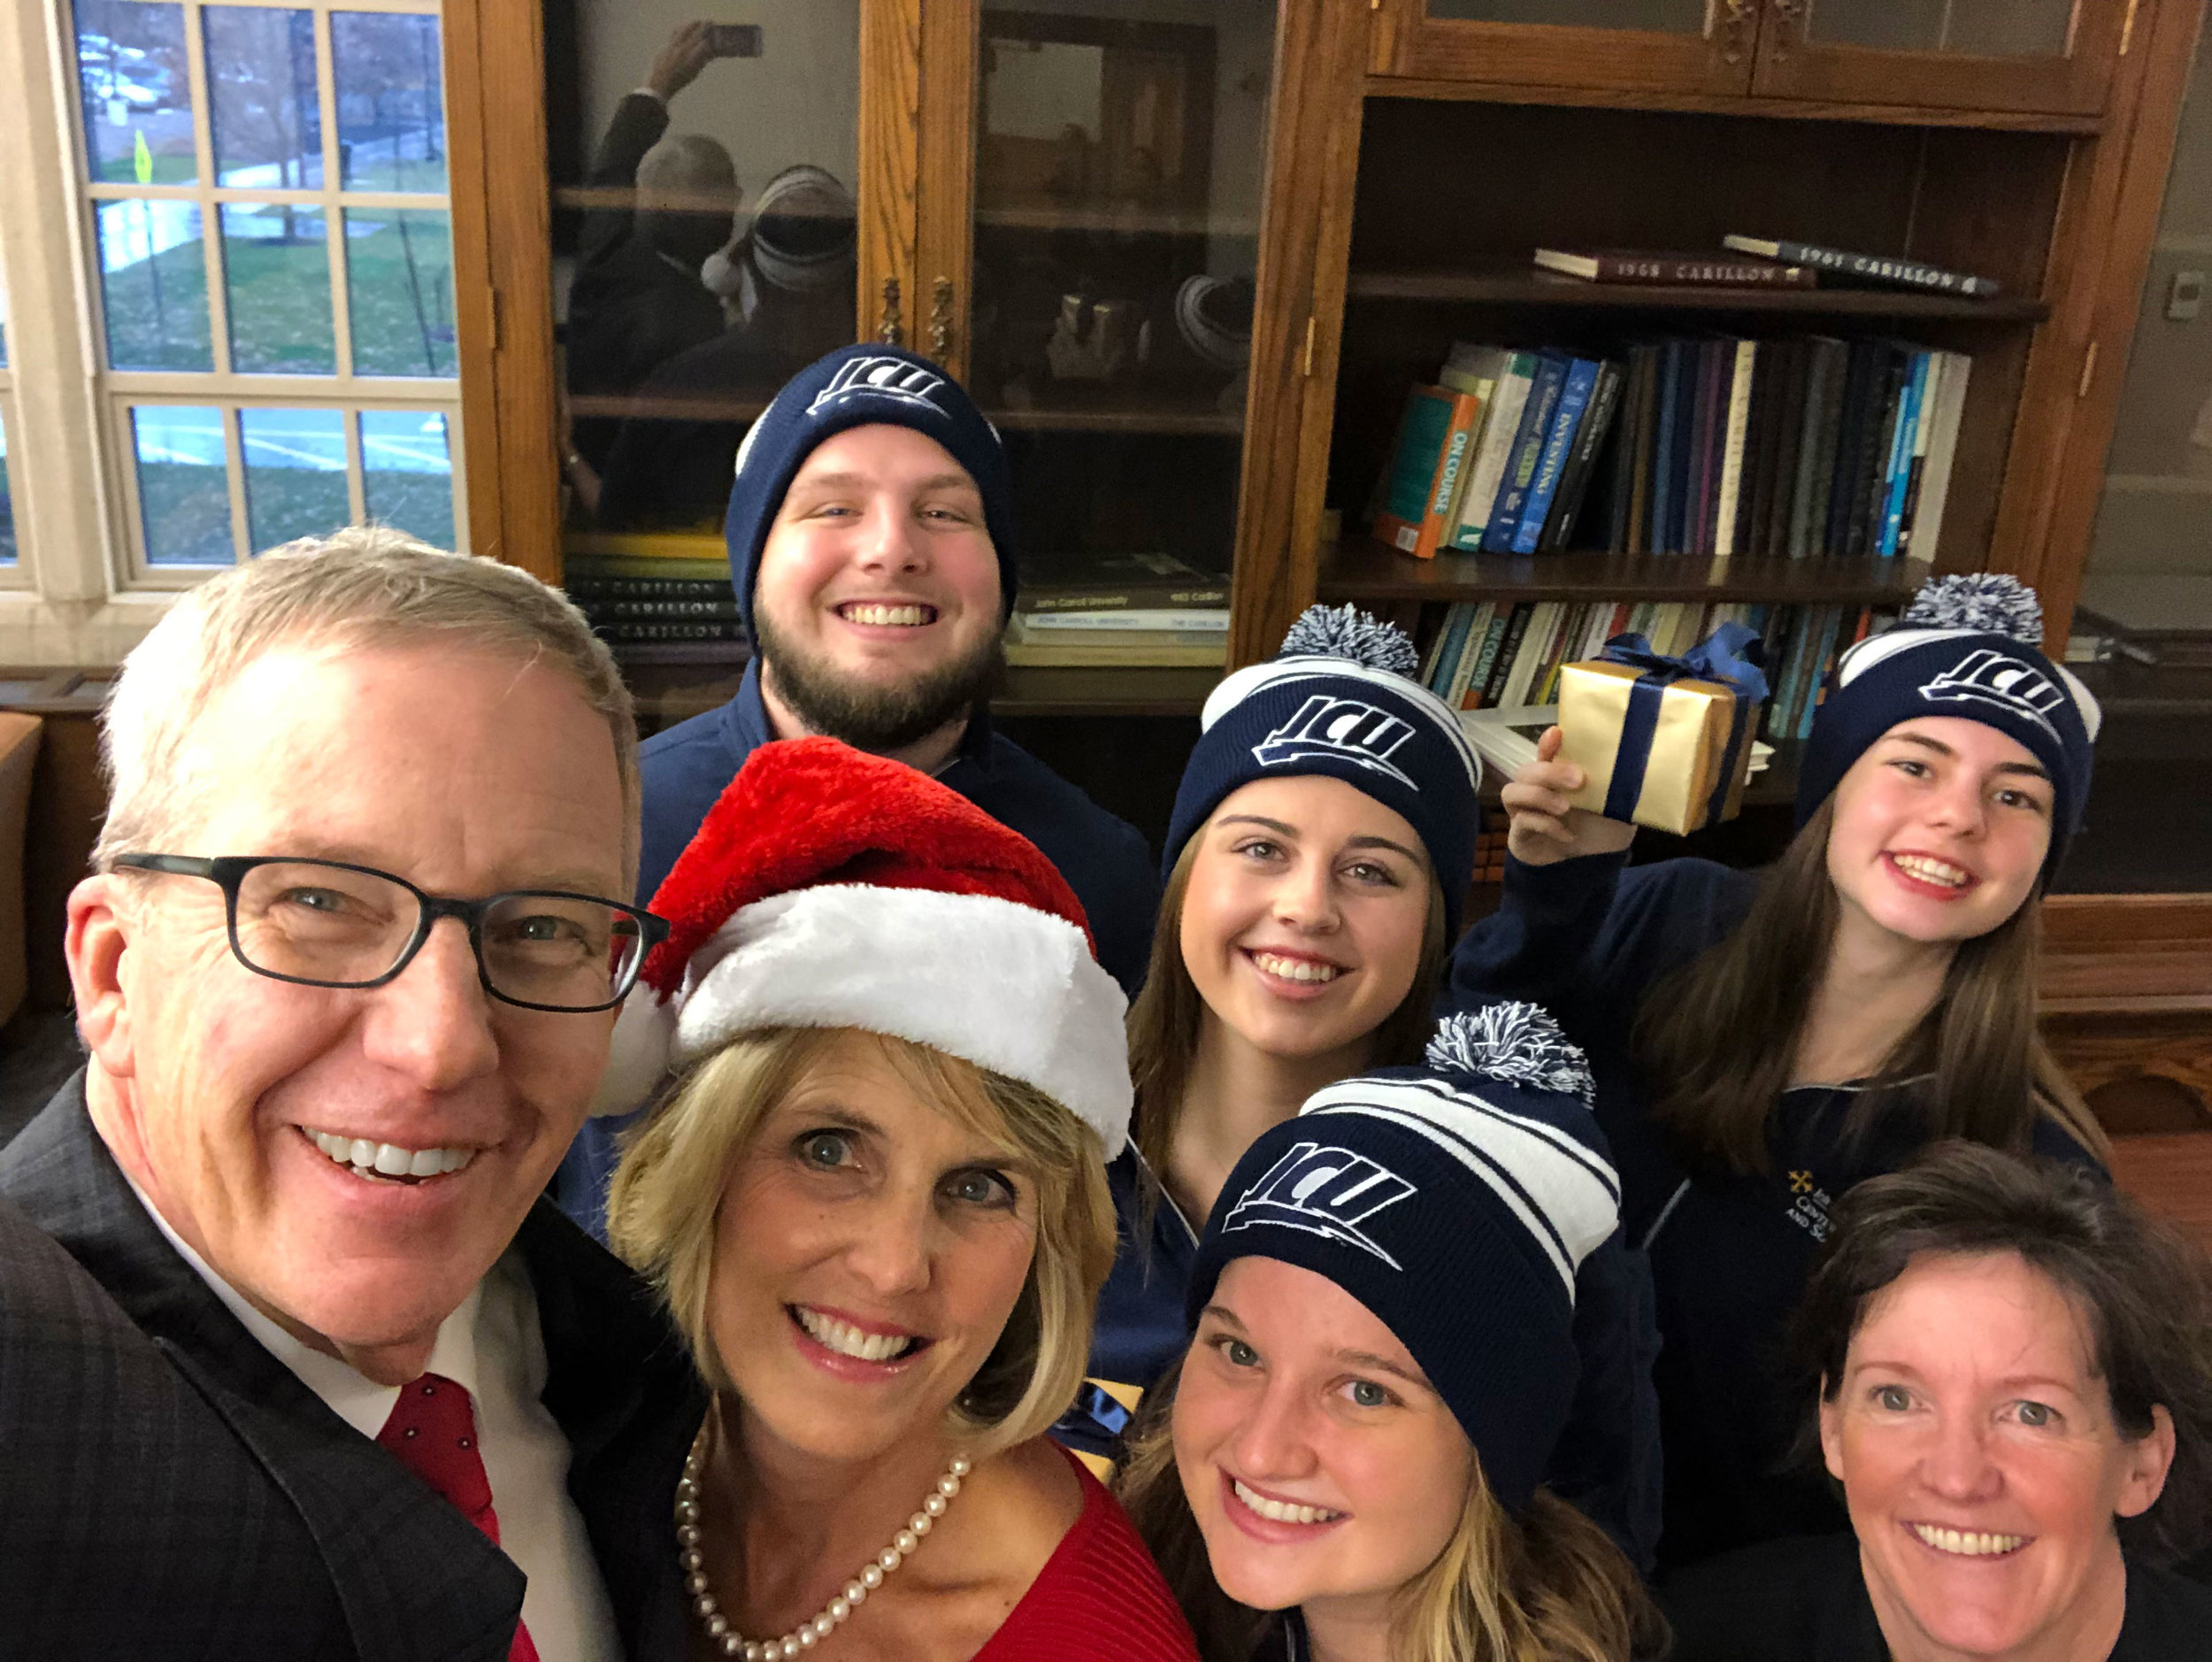 Dr. Michael Johnson, President of John Carroll University, took a holiday selfie with his wife, Jill, and Sr. Katherine Feely, director of the Center for Service and Social Action, with several students (photo by John Carroll University)